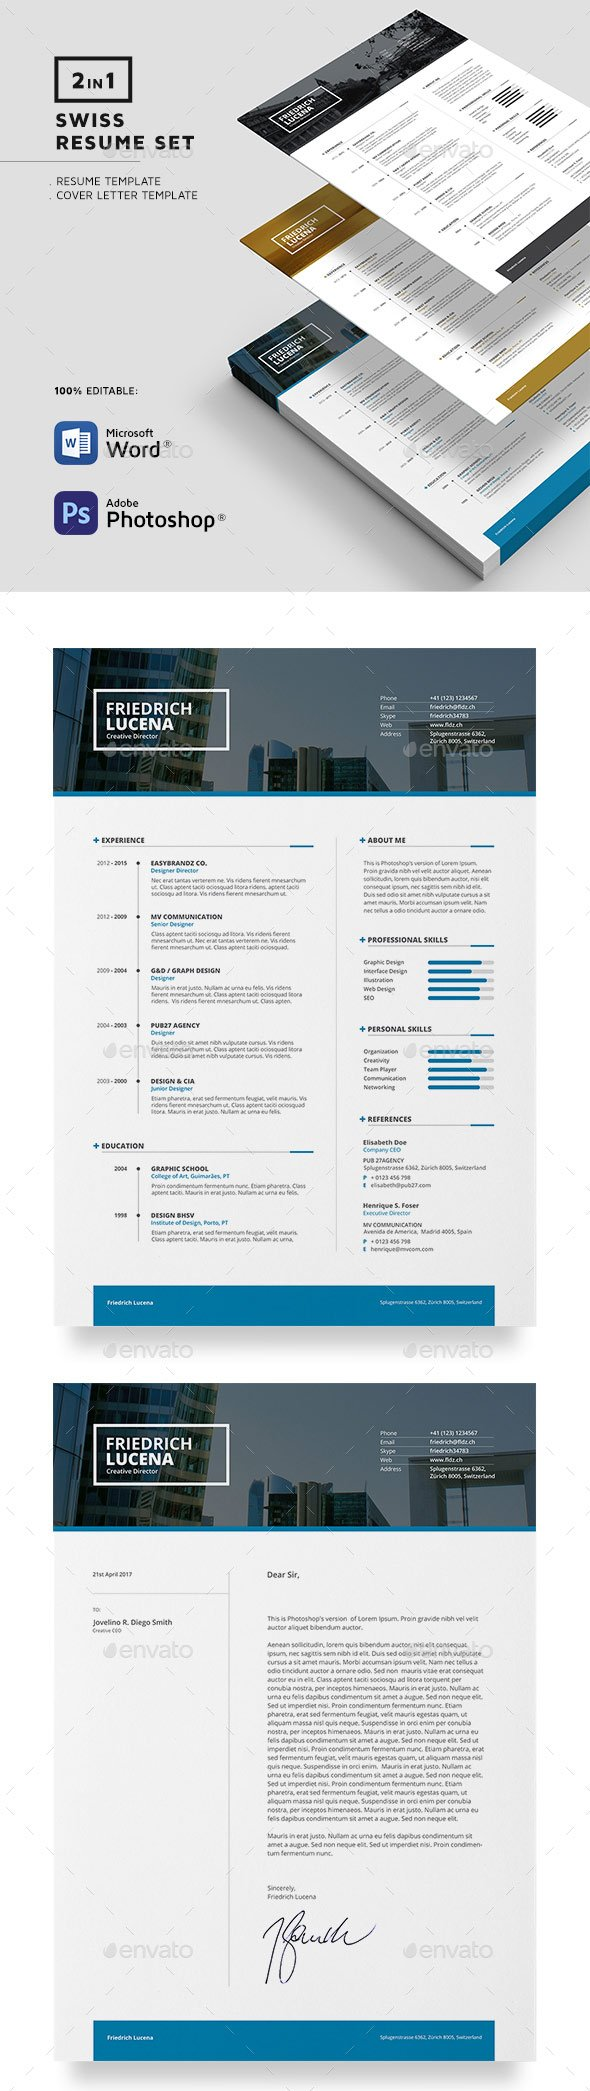 swiss resume template with organize resume sections and formatting